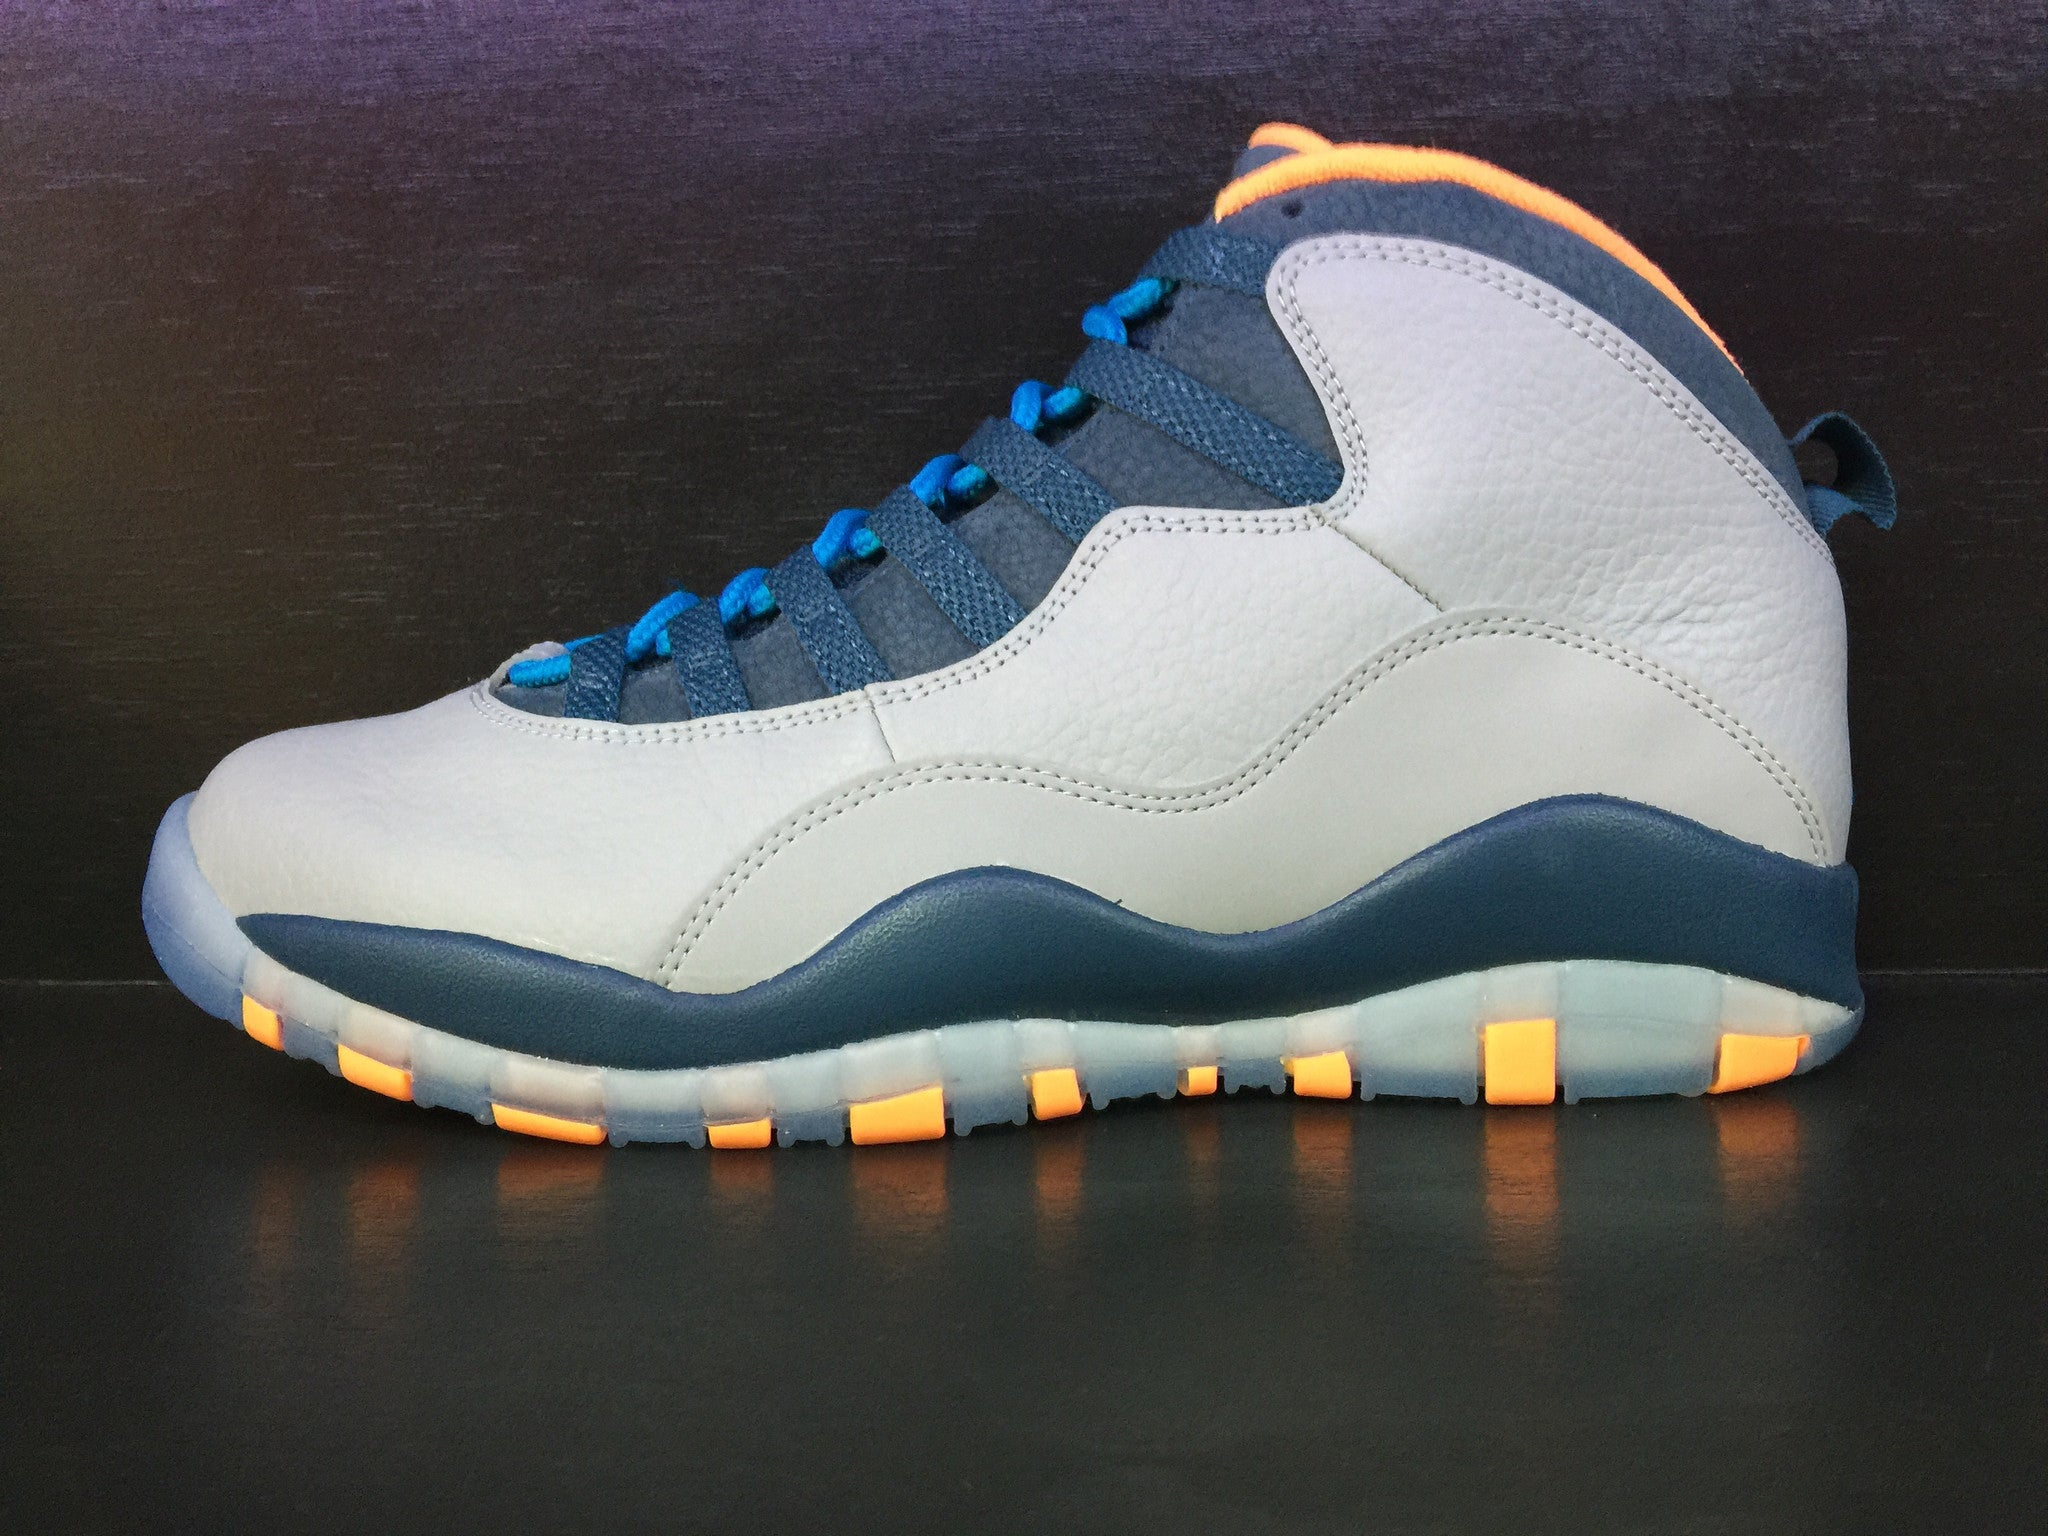 Air Jordan 10 Retro 'Bobcat'